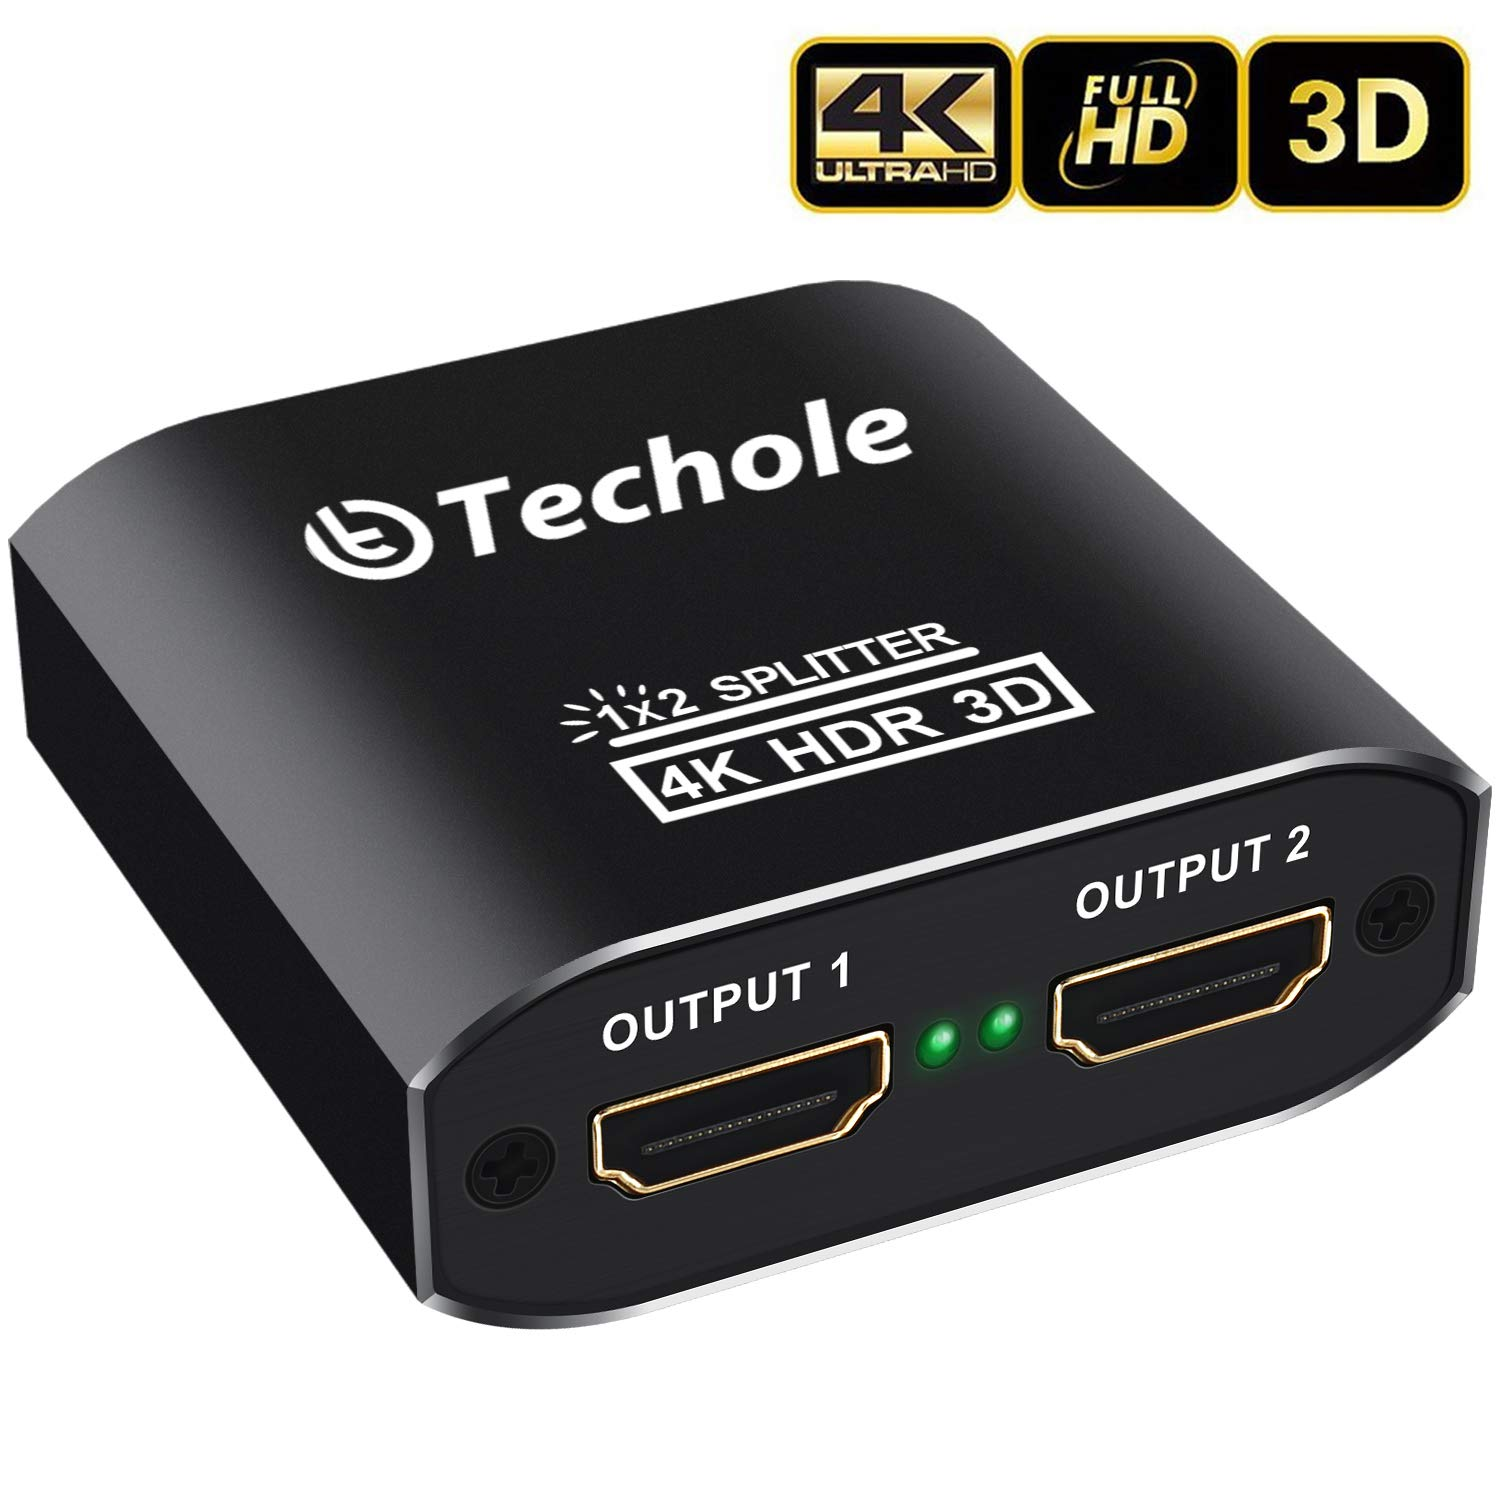 HDMI Splitter 1 In 2 Out - Techole 4K Aluminum Ver1.4 HDCP, Powered HDMI Splitter Supports 3D 4K Full HD 1080P for Xbox PS4 PS3 Fire Stick Roku Blu-Ray Player Apple TV HDTV - Cable Included